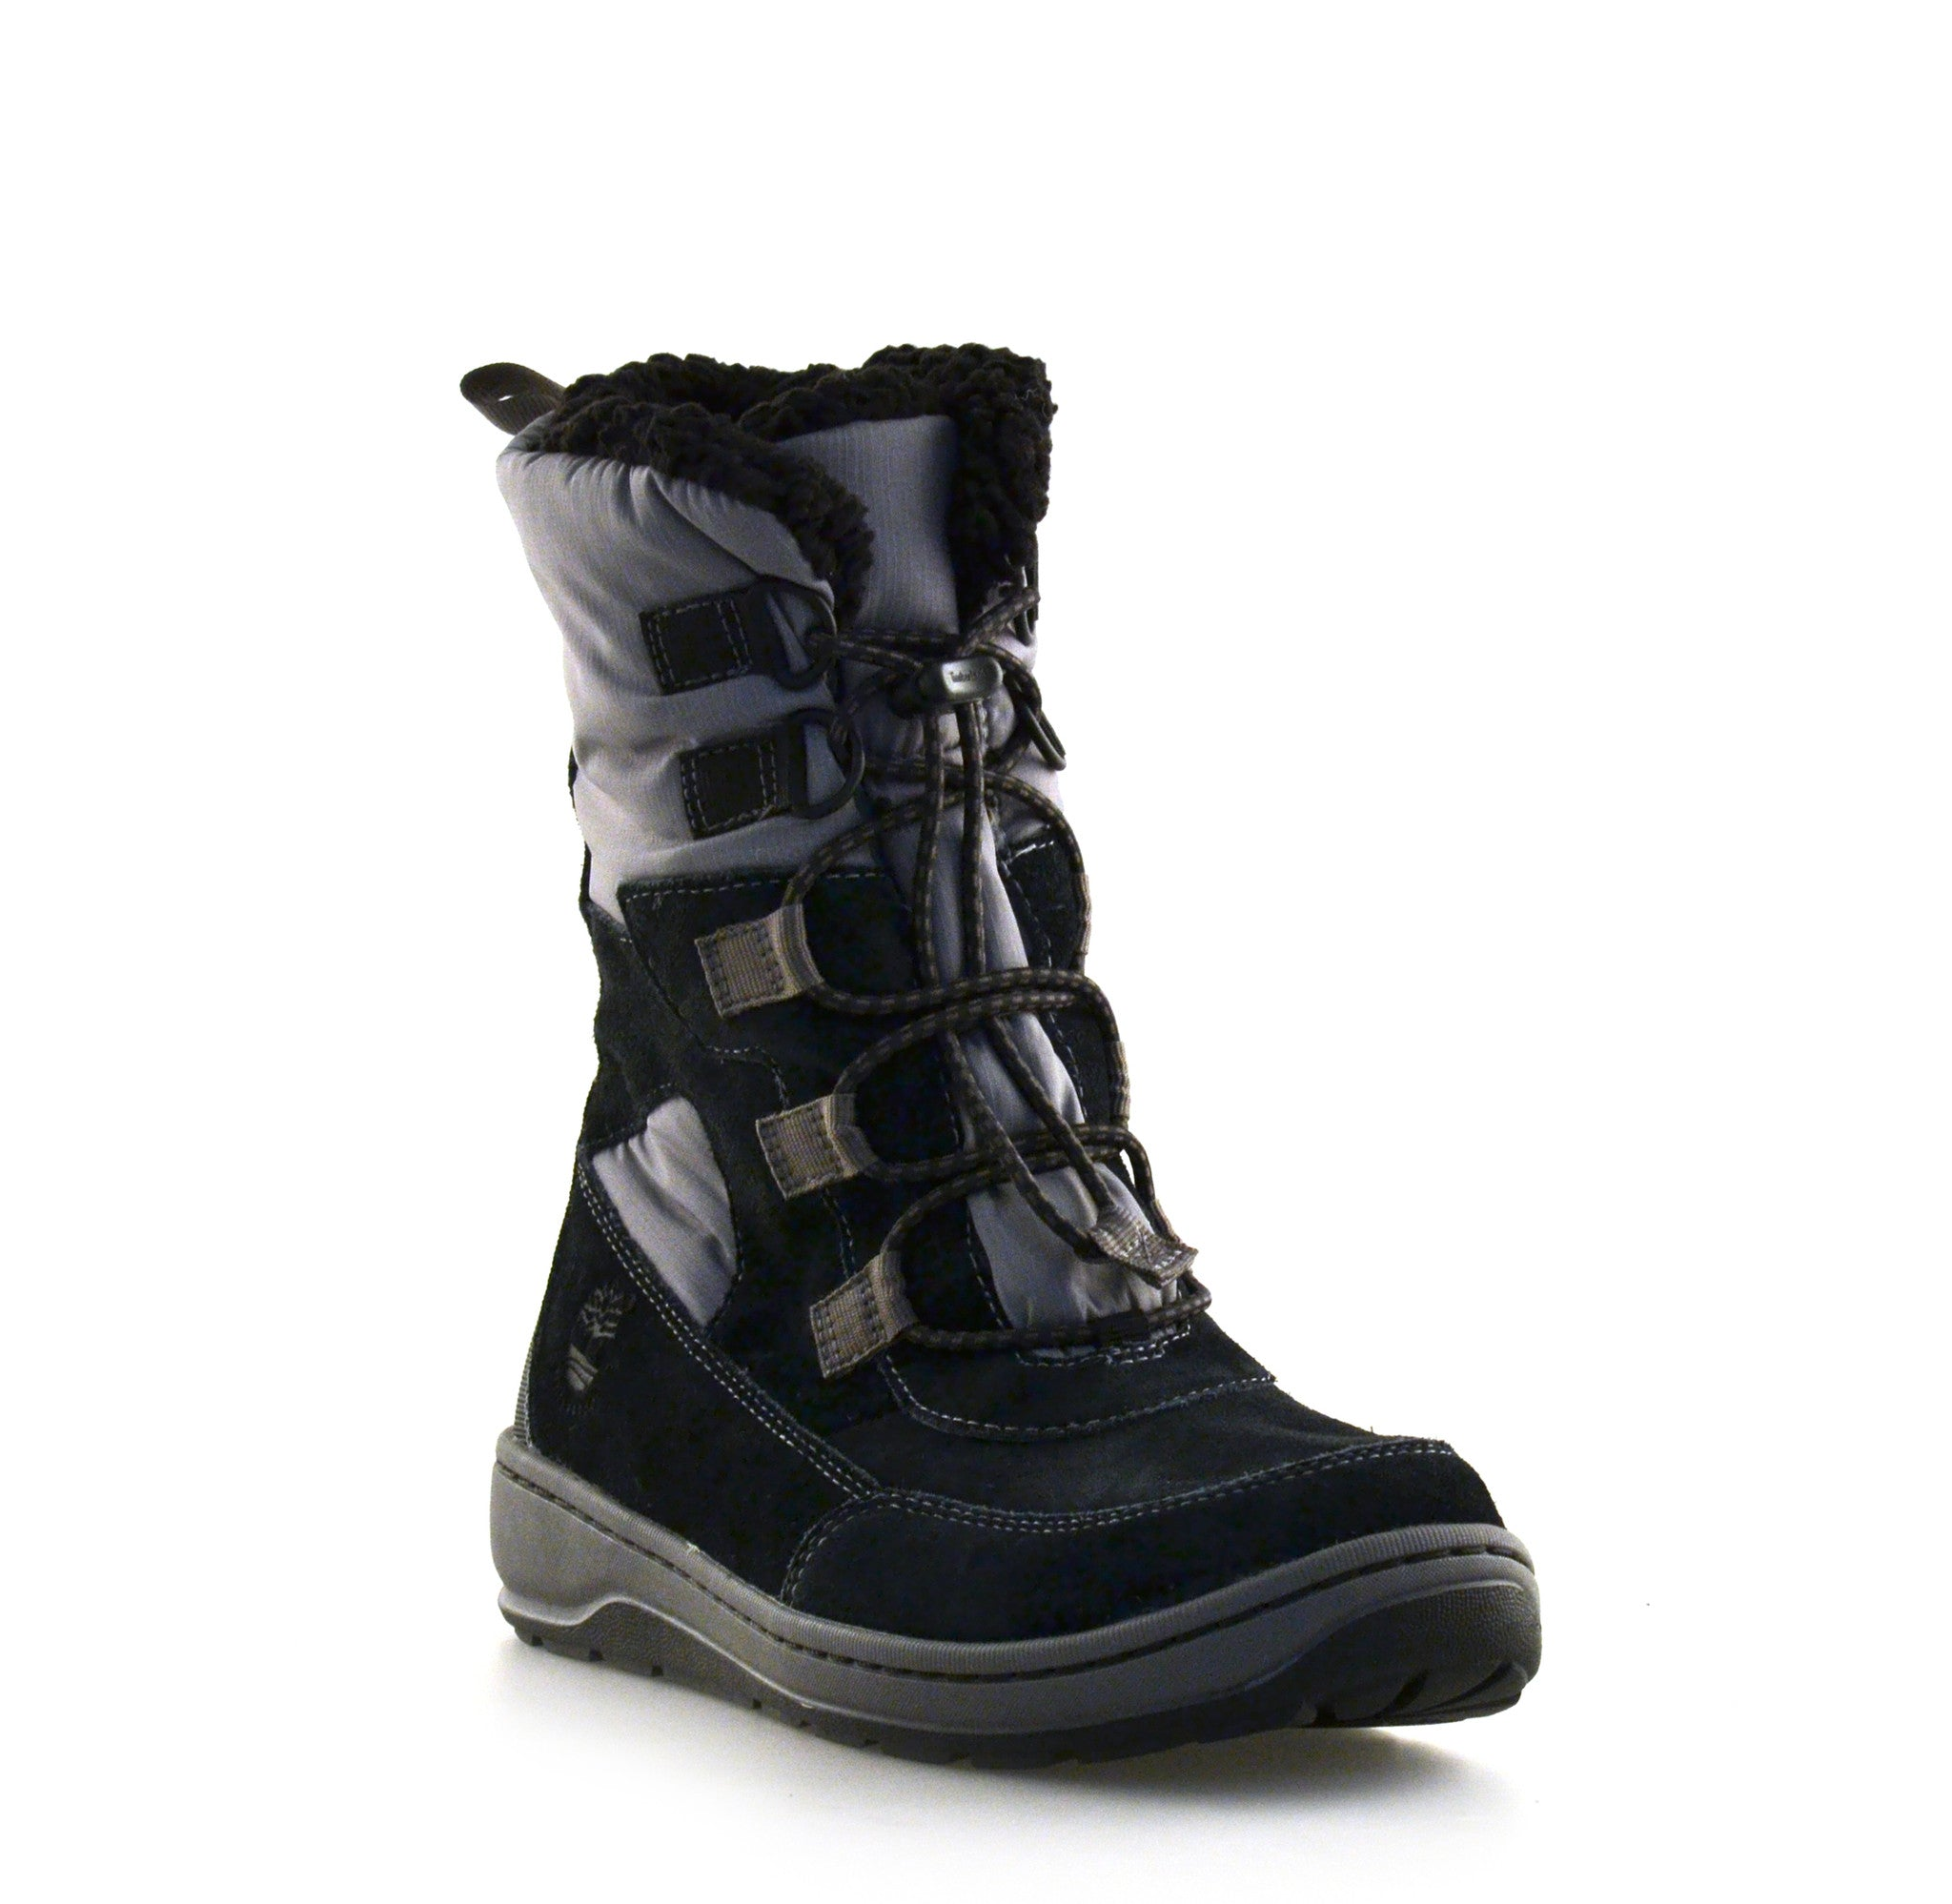 Kids Winterfest Waterproof Boot